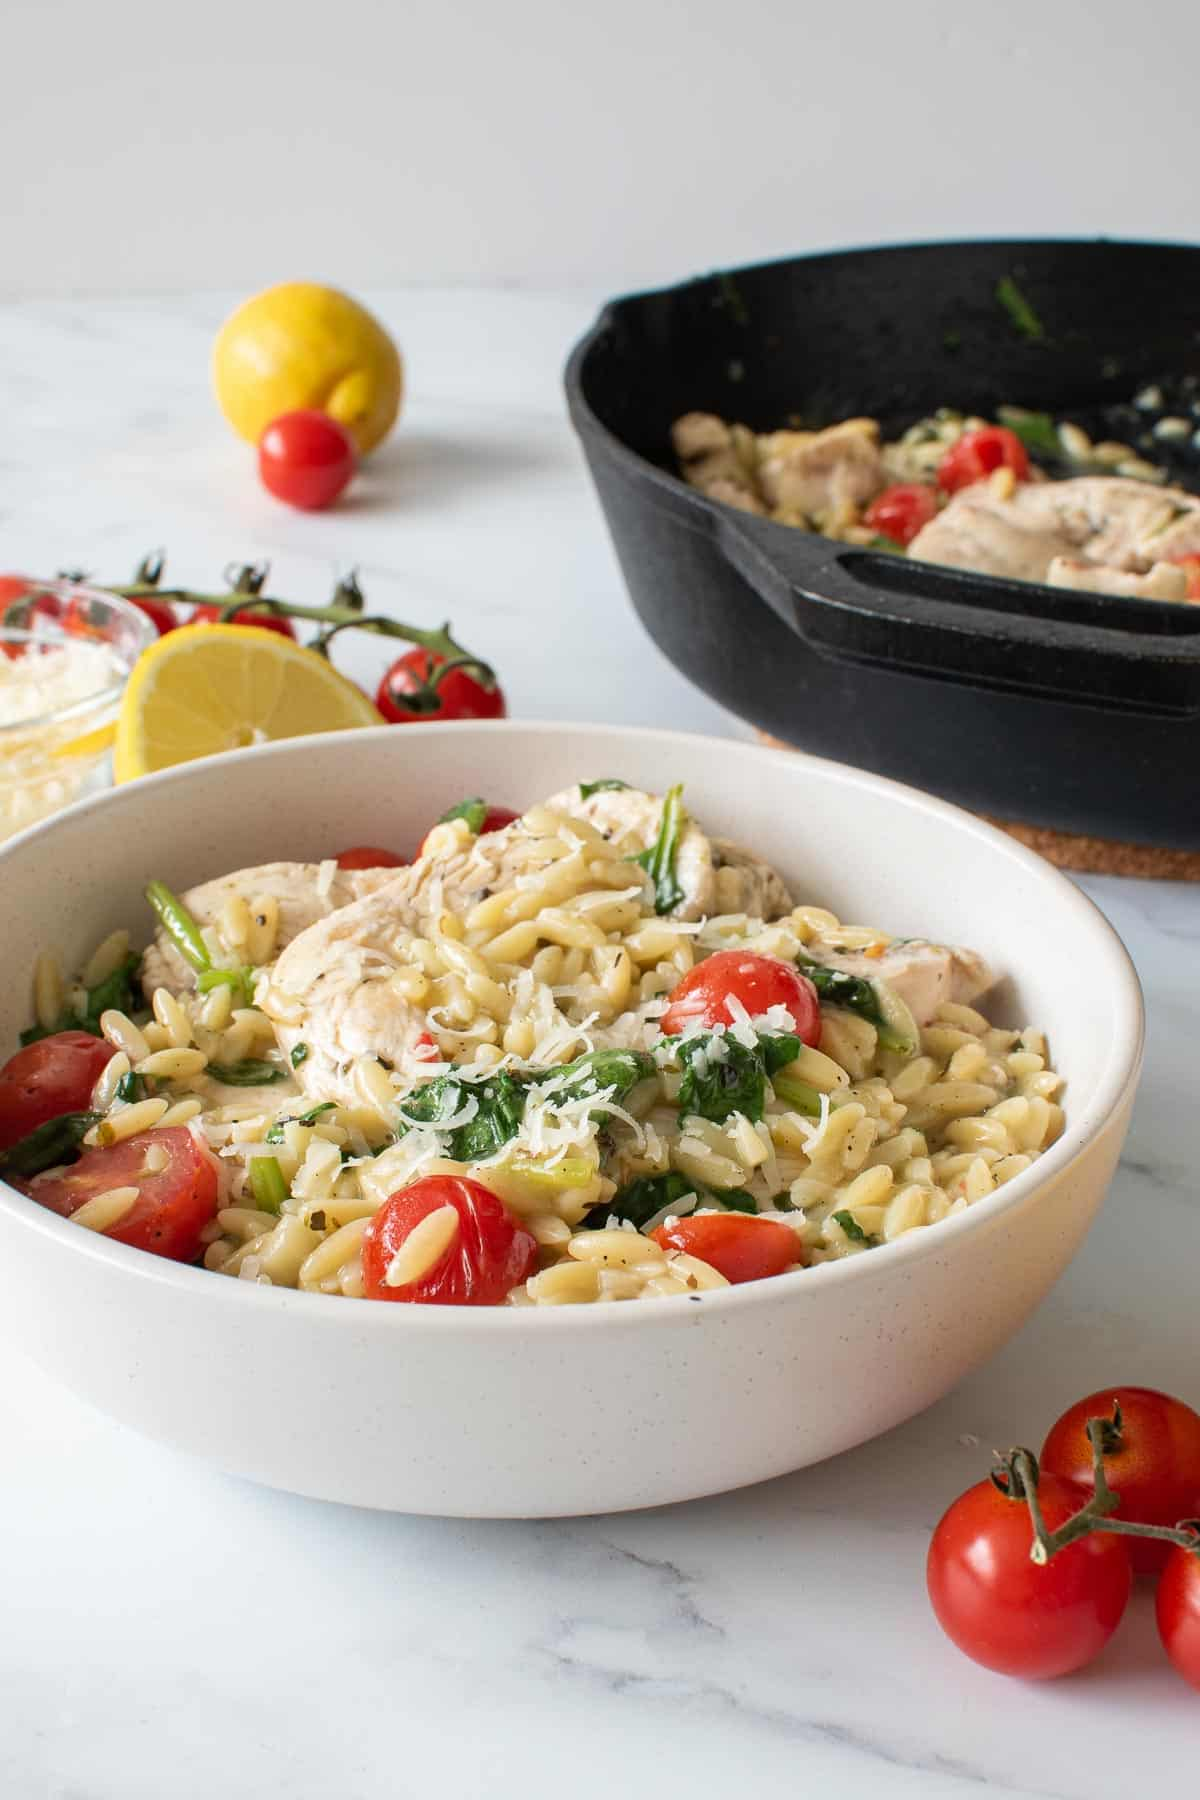 A bowl of lemon chicken with orzo and tomatoes, with a cast iron skillet in the background.